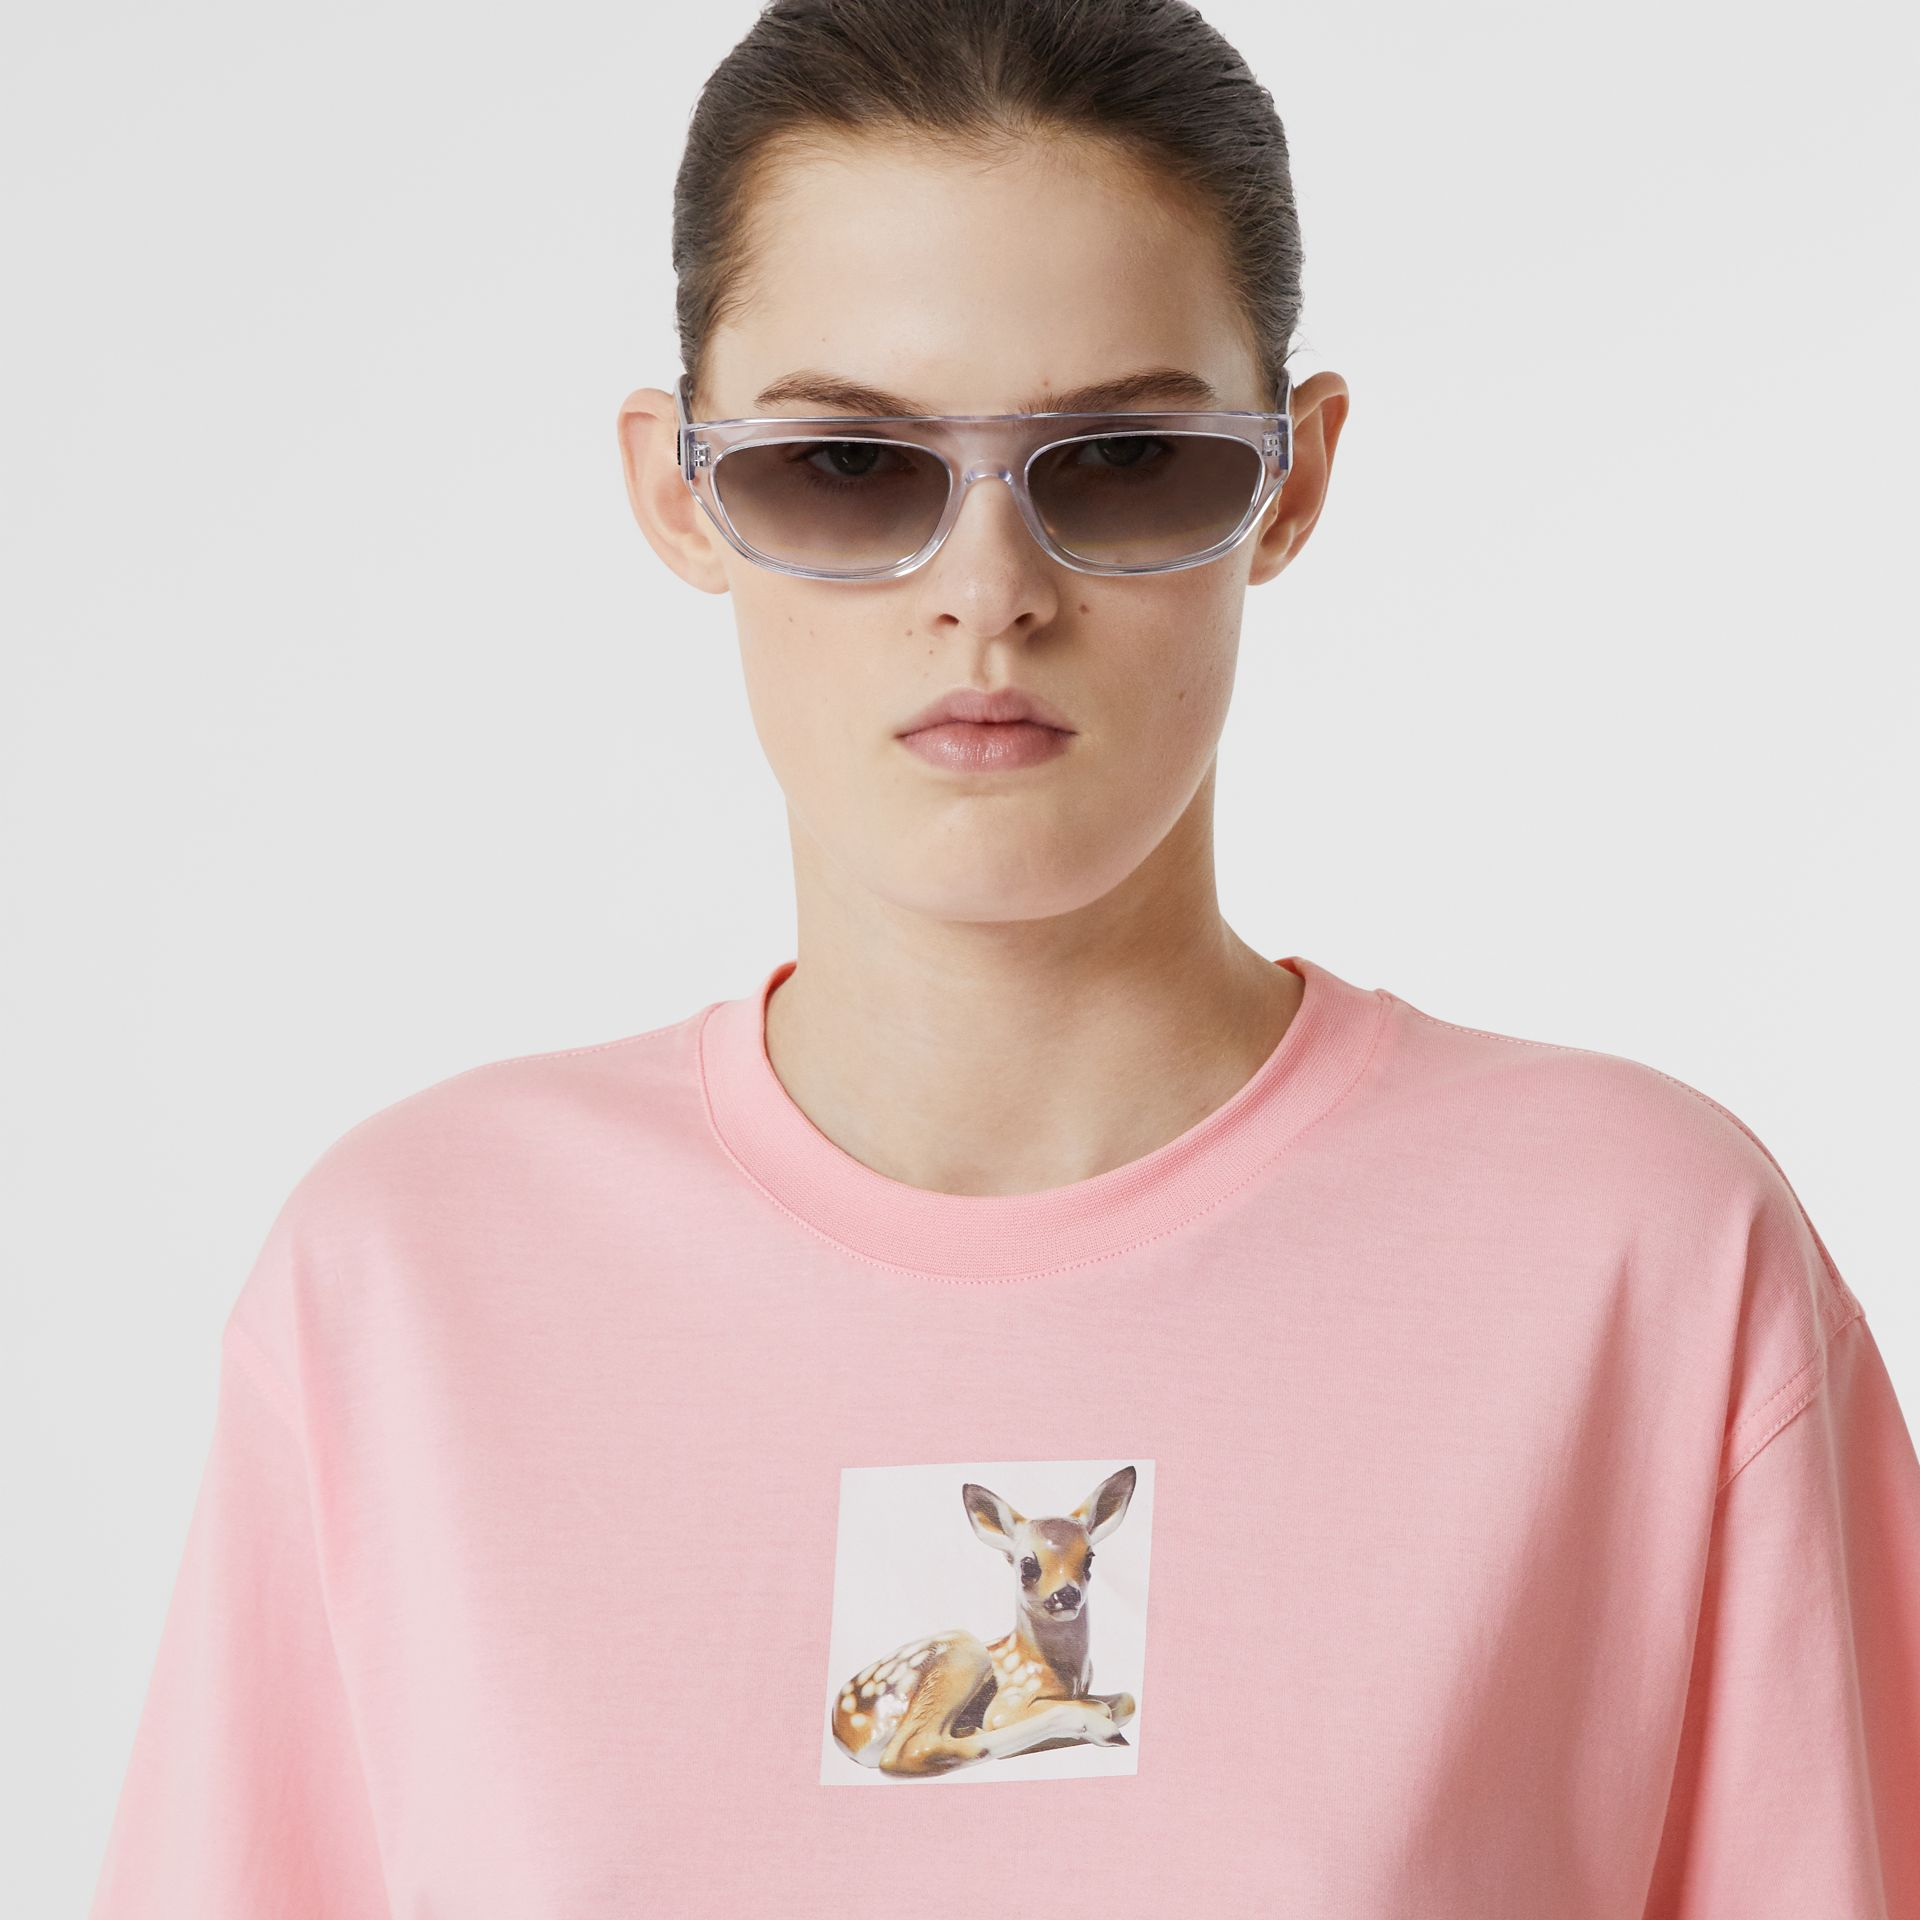 Deer Print Cotton T-shirt in Candy Pink - Women | Burberry United Kingdom - gallery image 1